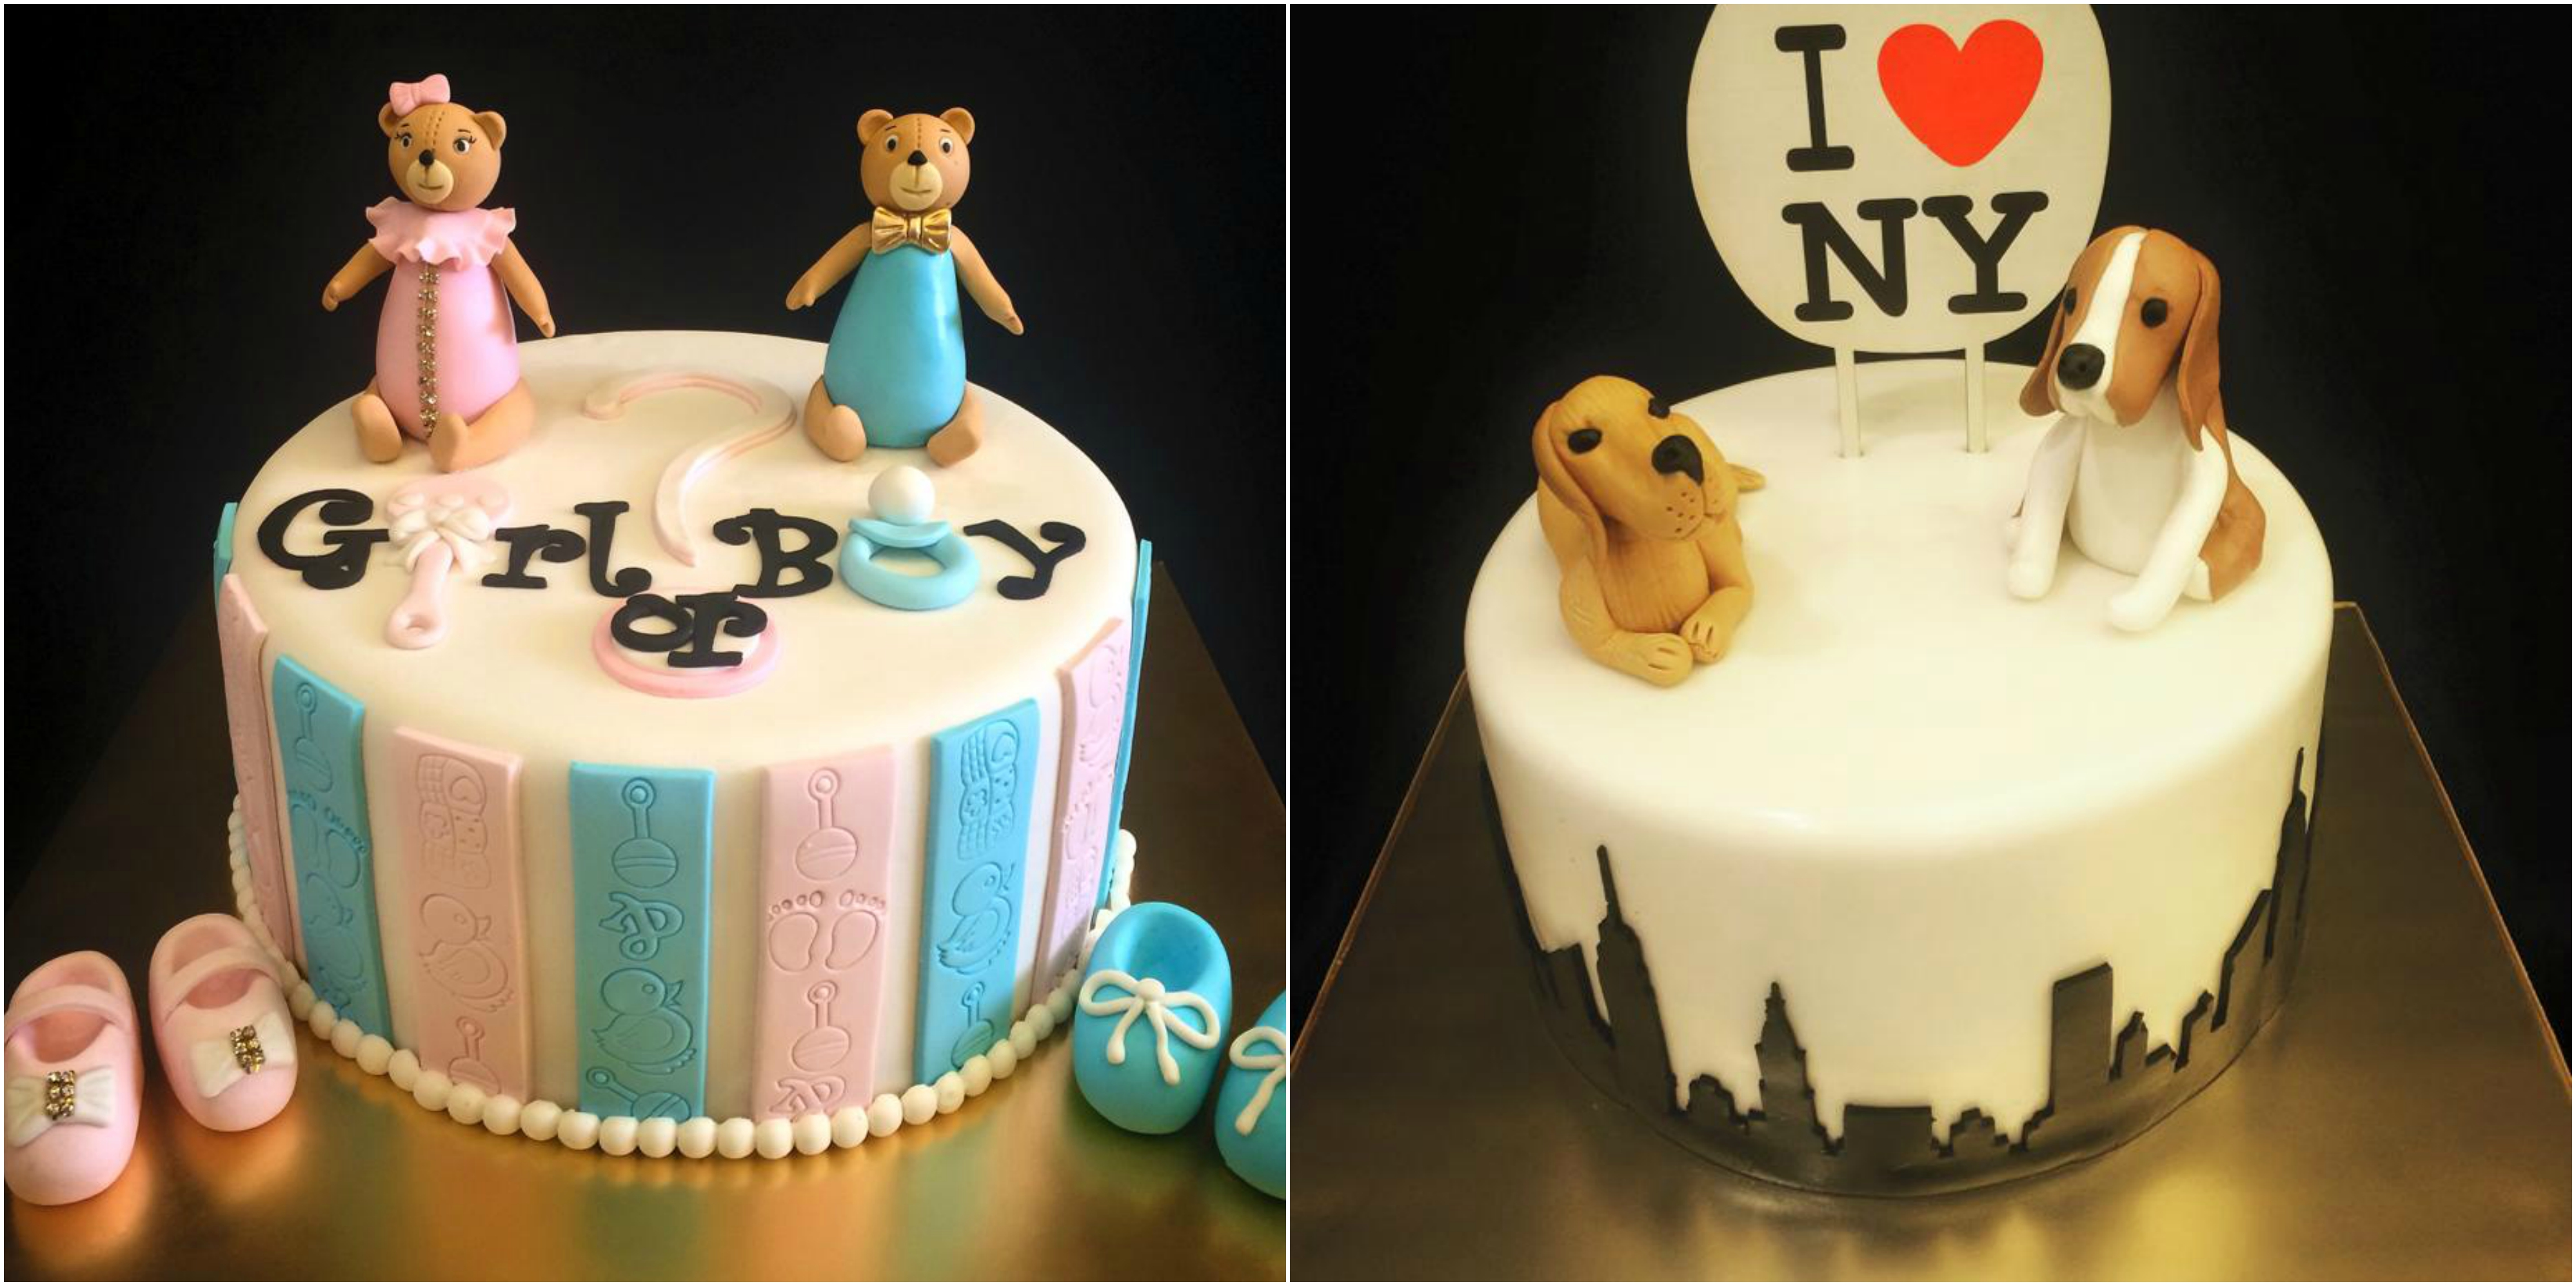 5 Amazing Birthday Cake Designs For Kids